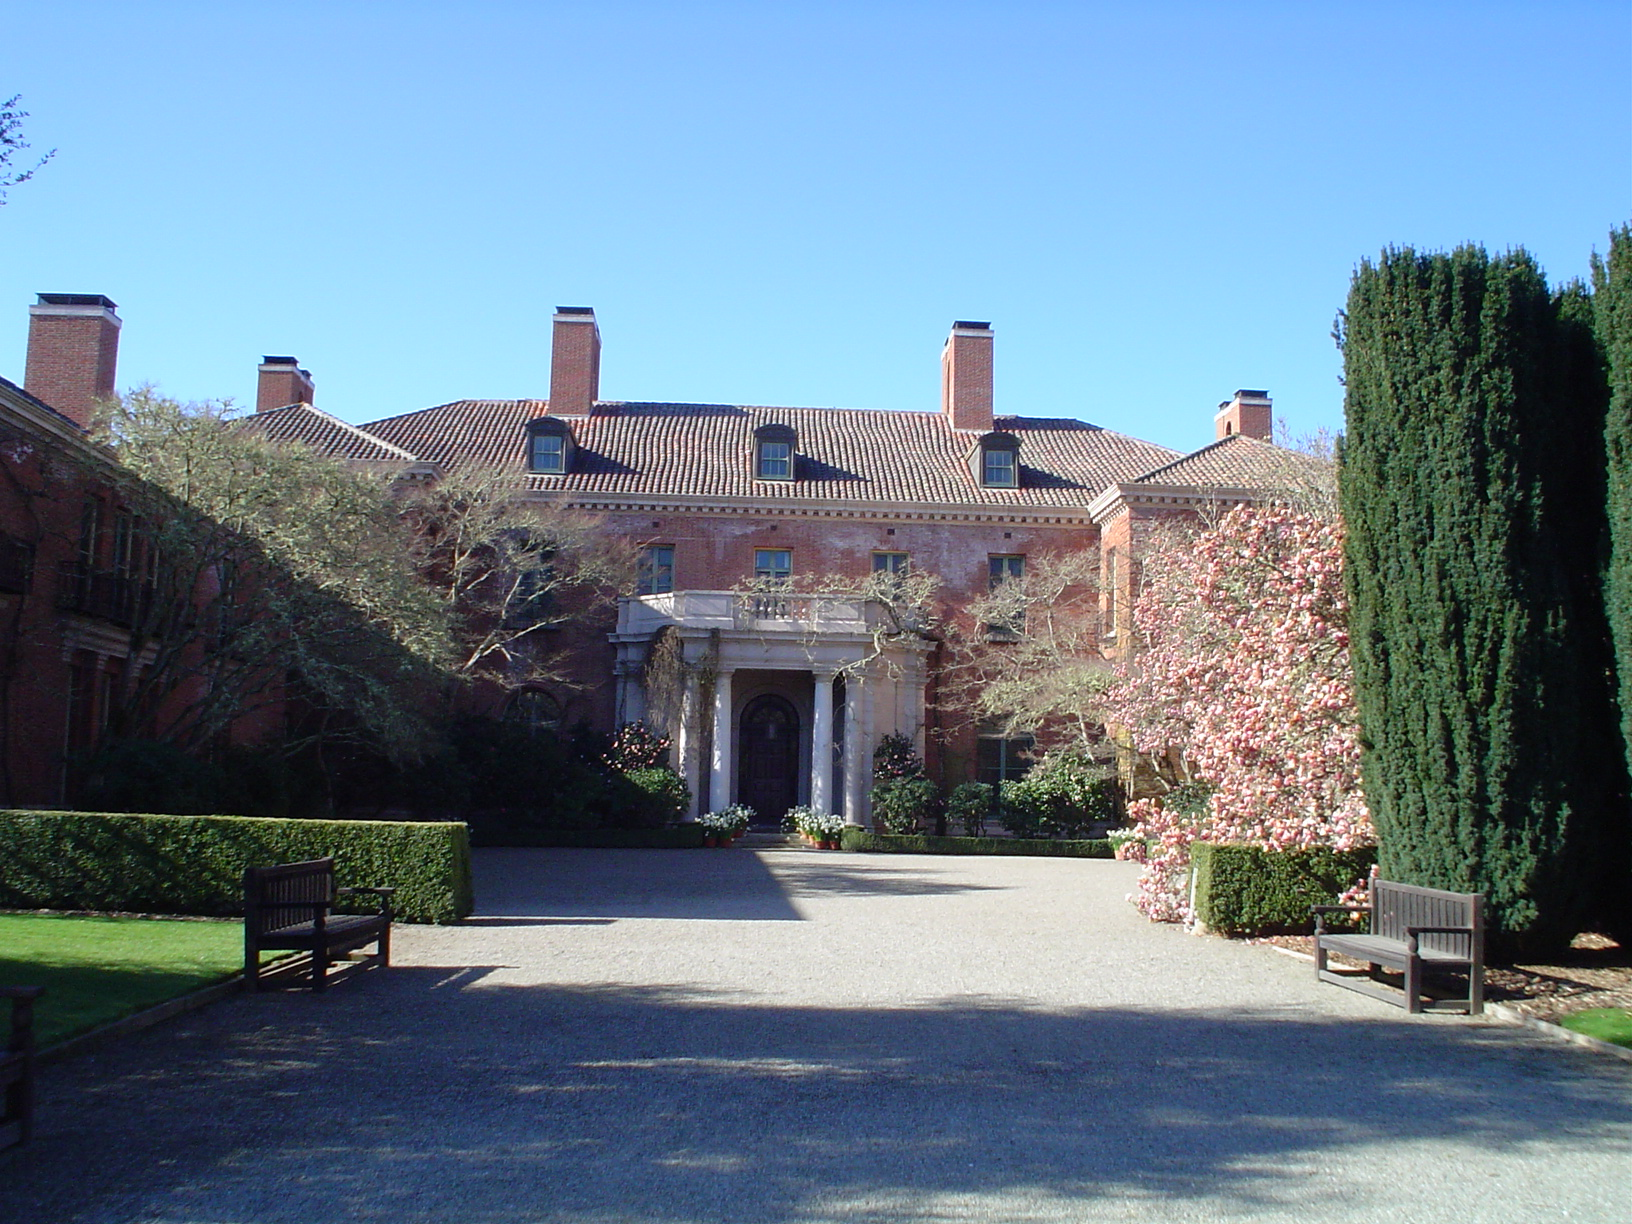 Walkway and front entrance to Filoli.